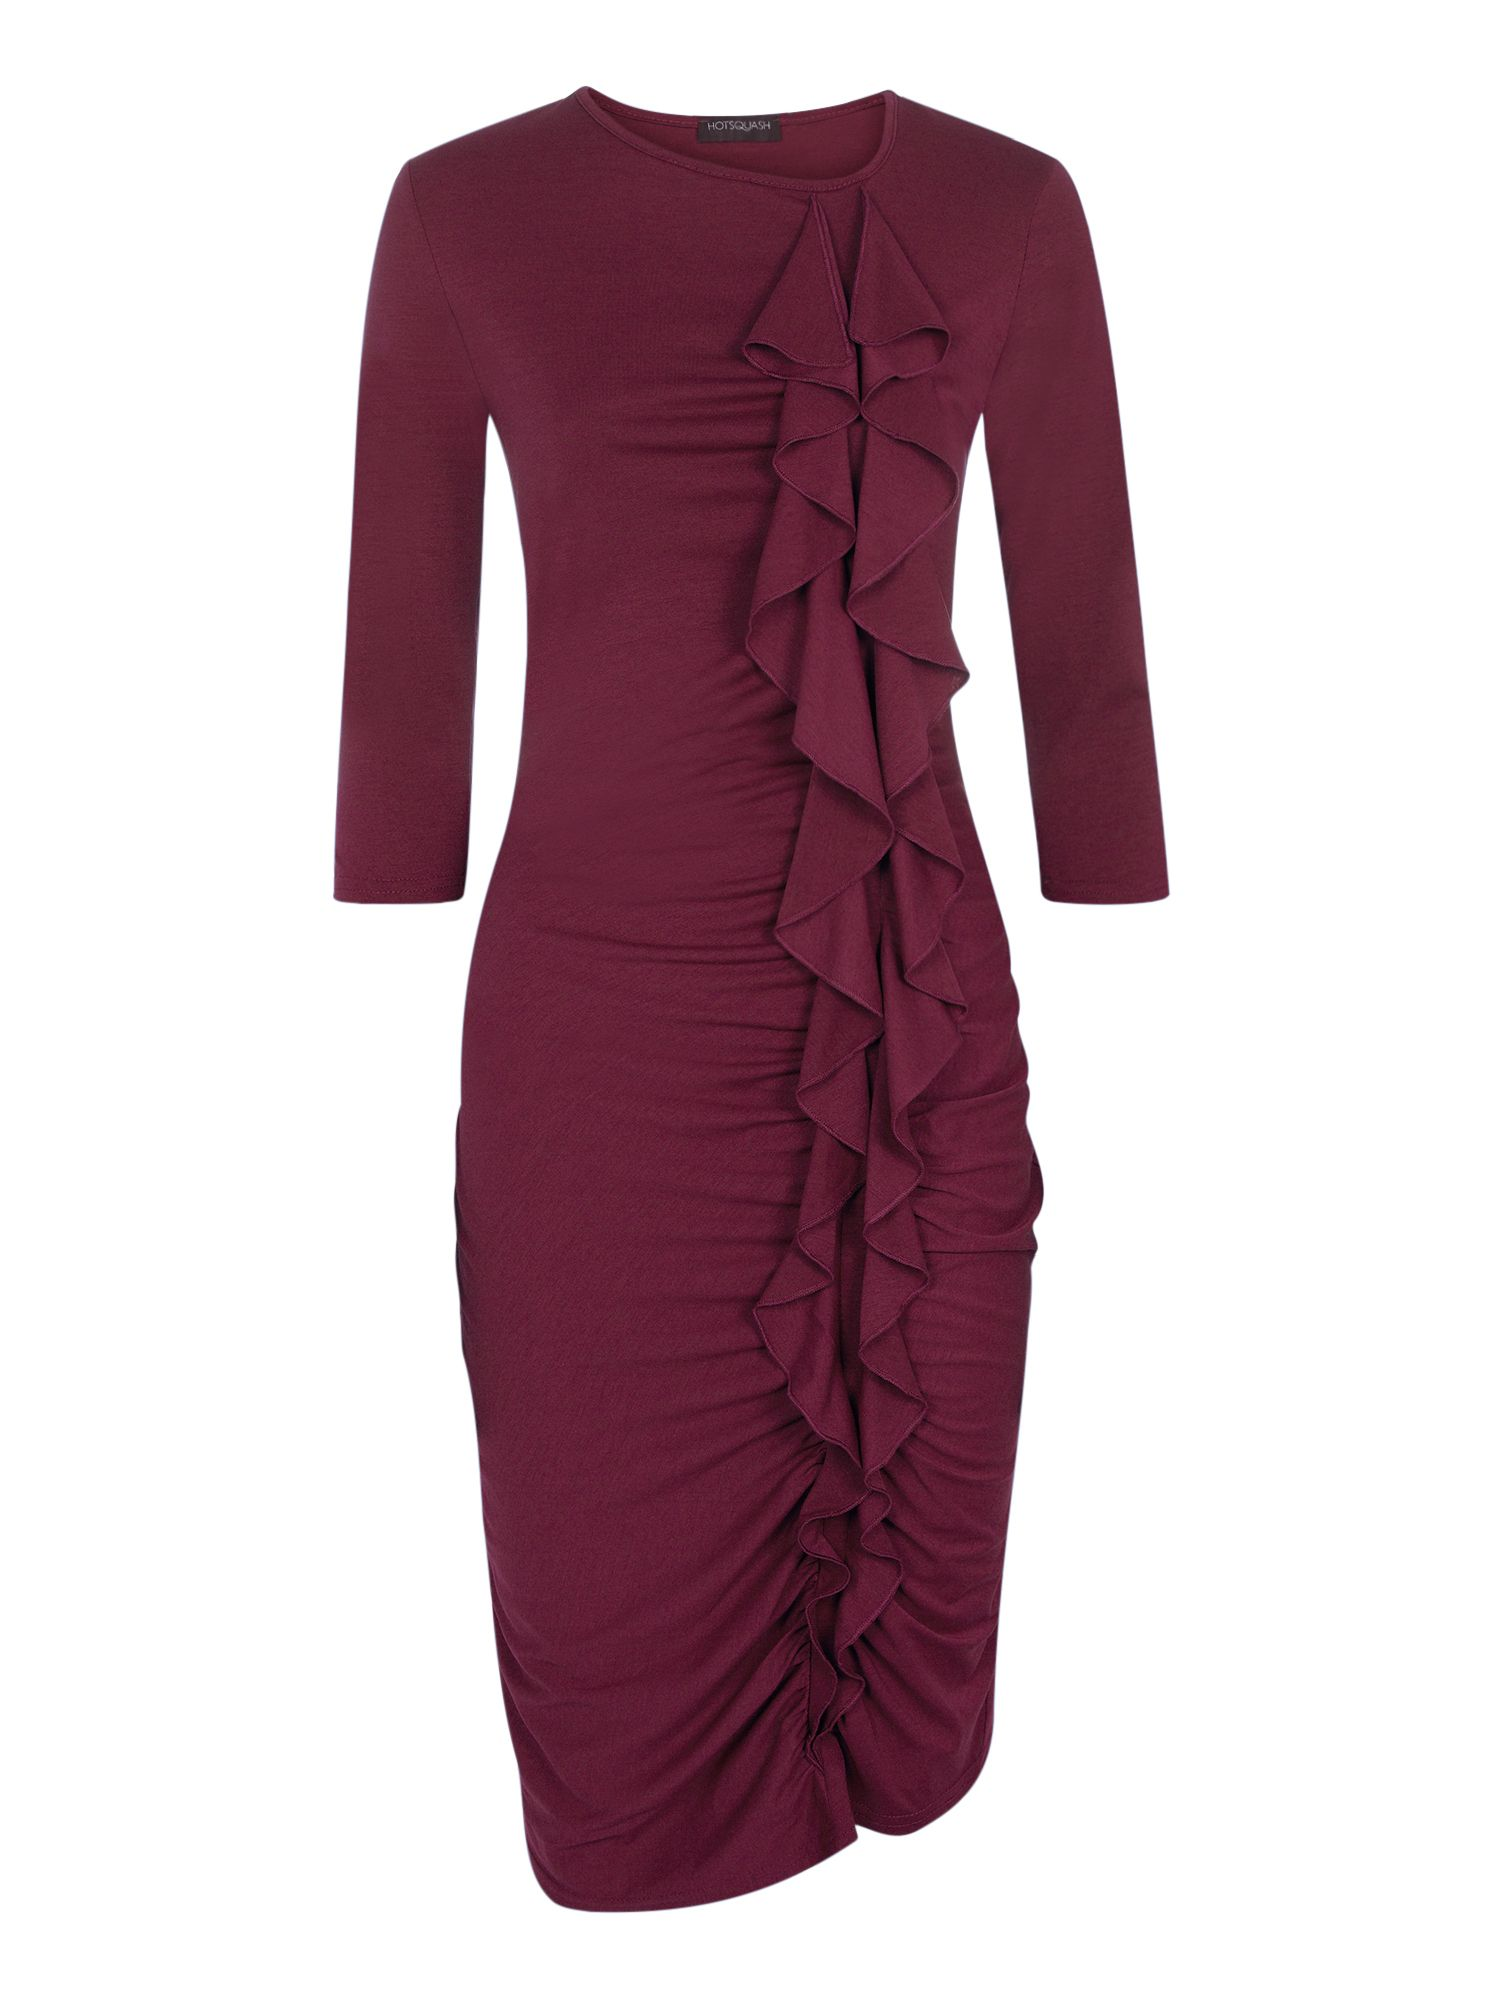 HotSquash Long sleeved dress with frill detail, Red